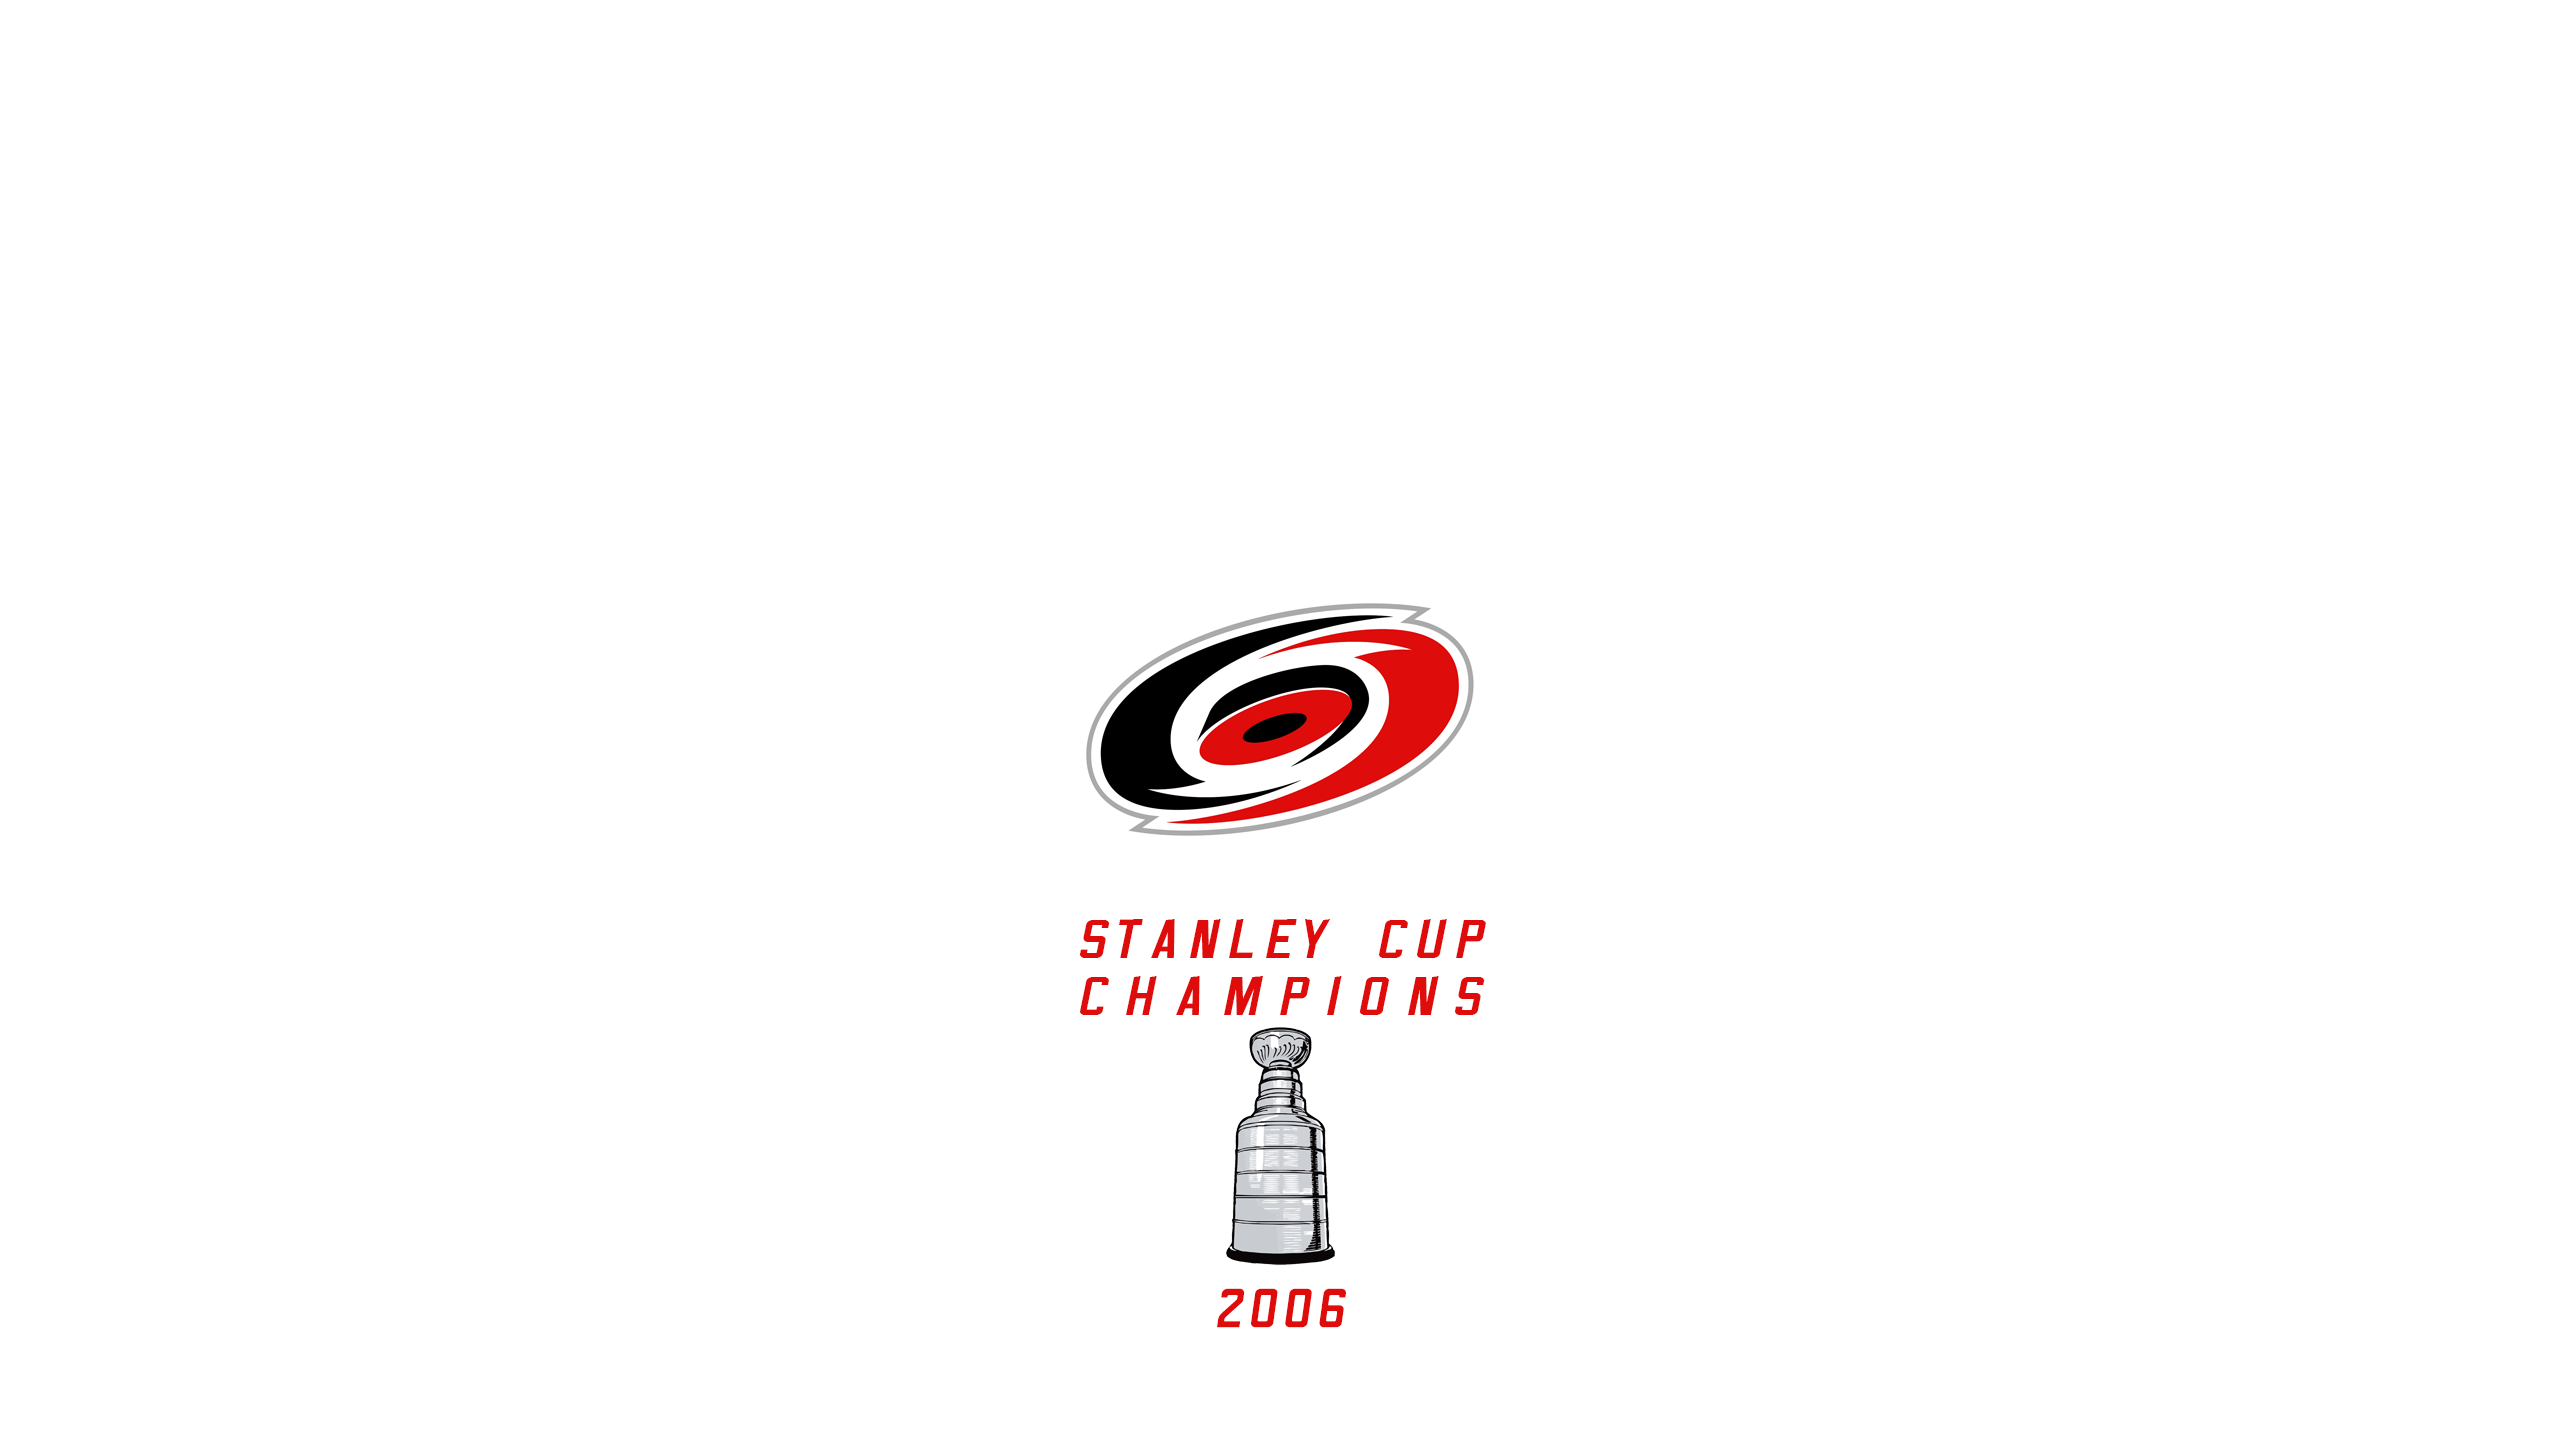 Carolina Hurricanes - Stanley Cup